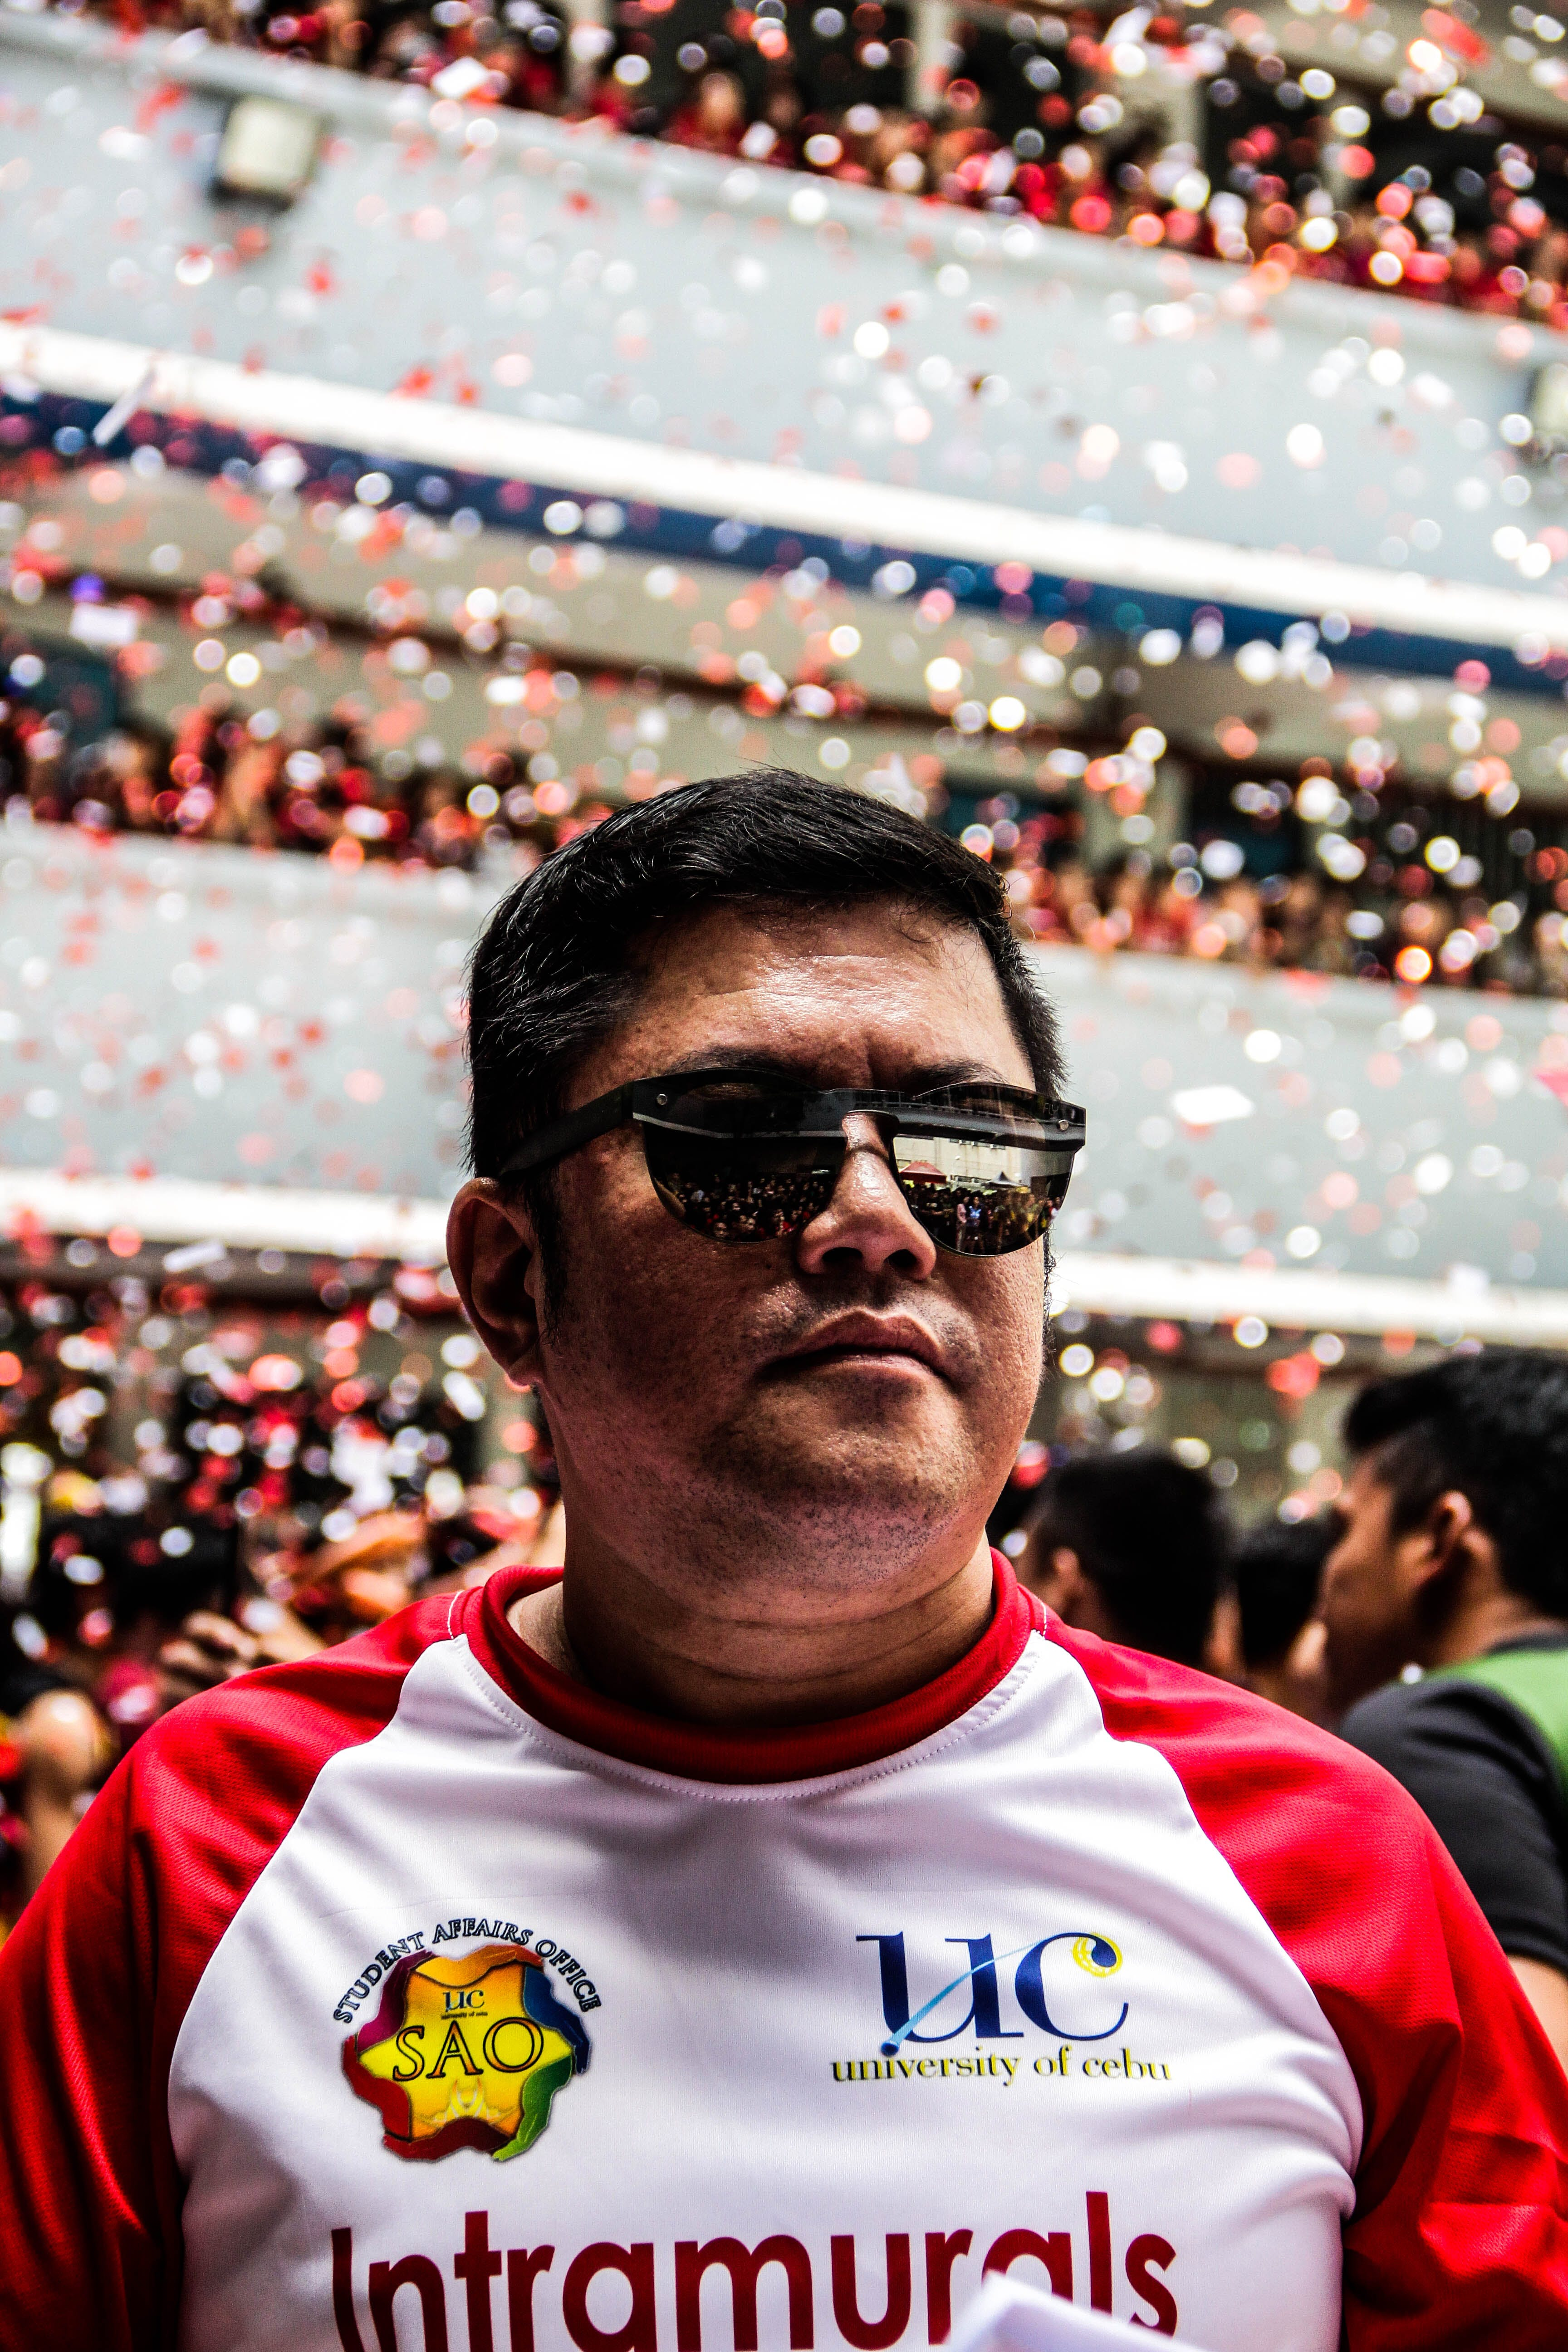 Man Wearing Red and White Top and Black Sunglasses